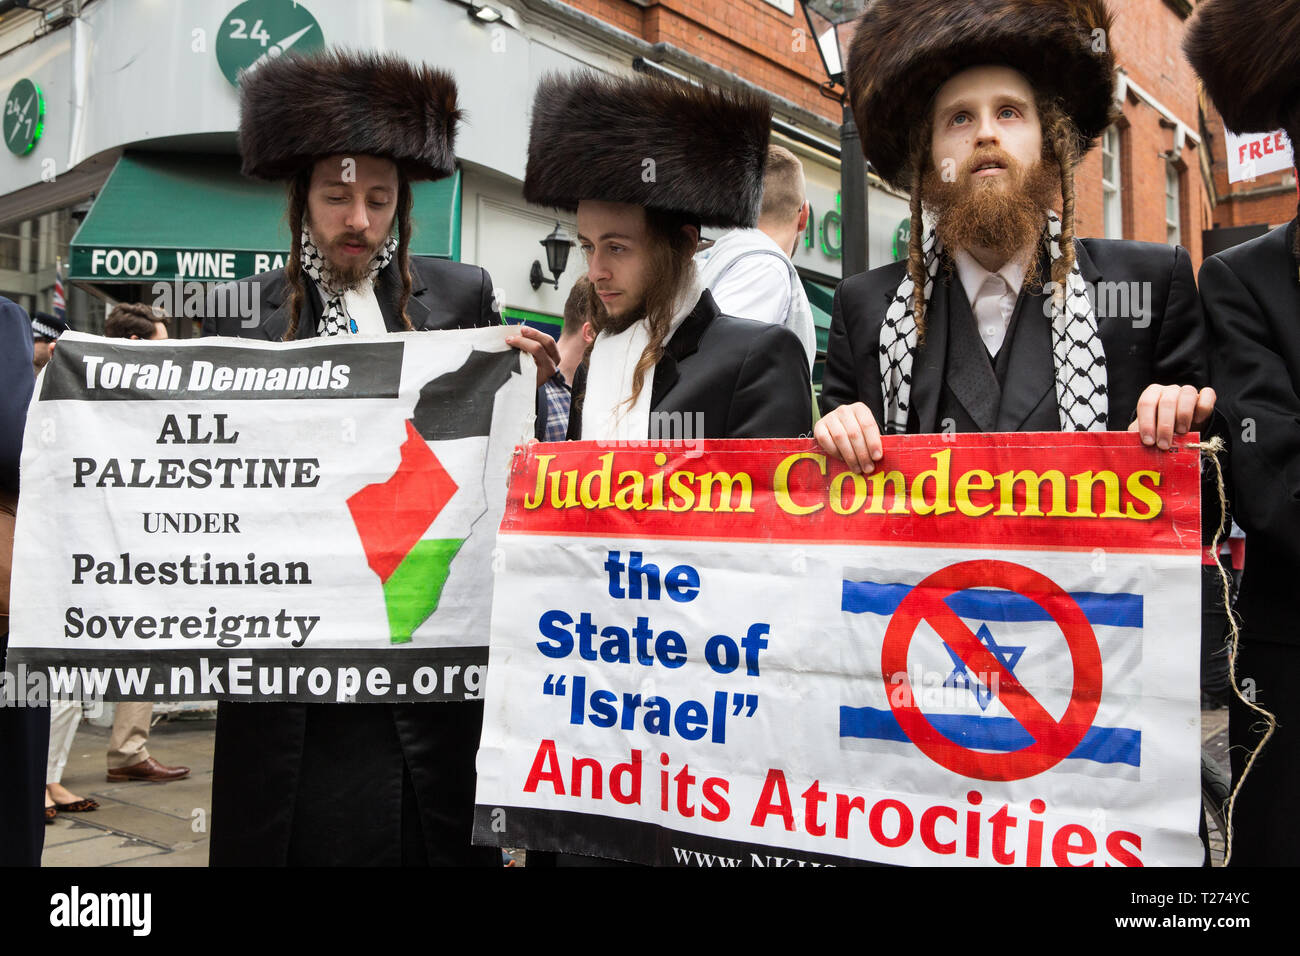 London, UK. 30th March, 2019. Orthodox Haredi Jews from Neturei Karta UK join pro-Palestinian campaigners at a Rally for Palestine outside the Israeli embassy to demand freedom, justice and equality for the Palestinian people. The rally was organised by Palestine Solidarity Campaign, Stop the War Coalition, Palestinian Forum in Britain, Friends of Al- Aqsa and Muslim Association of Britain. Credit: Mark Kerrison/Alamy Live News Stock Photo